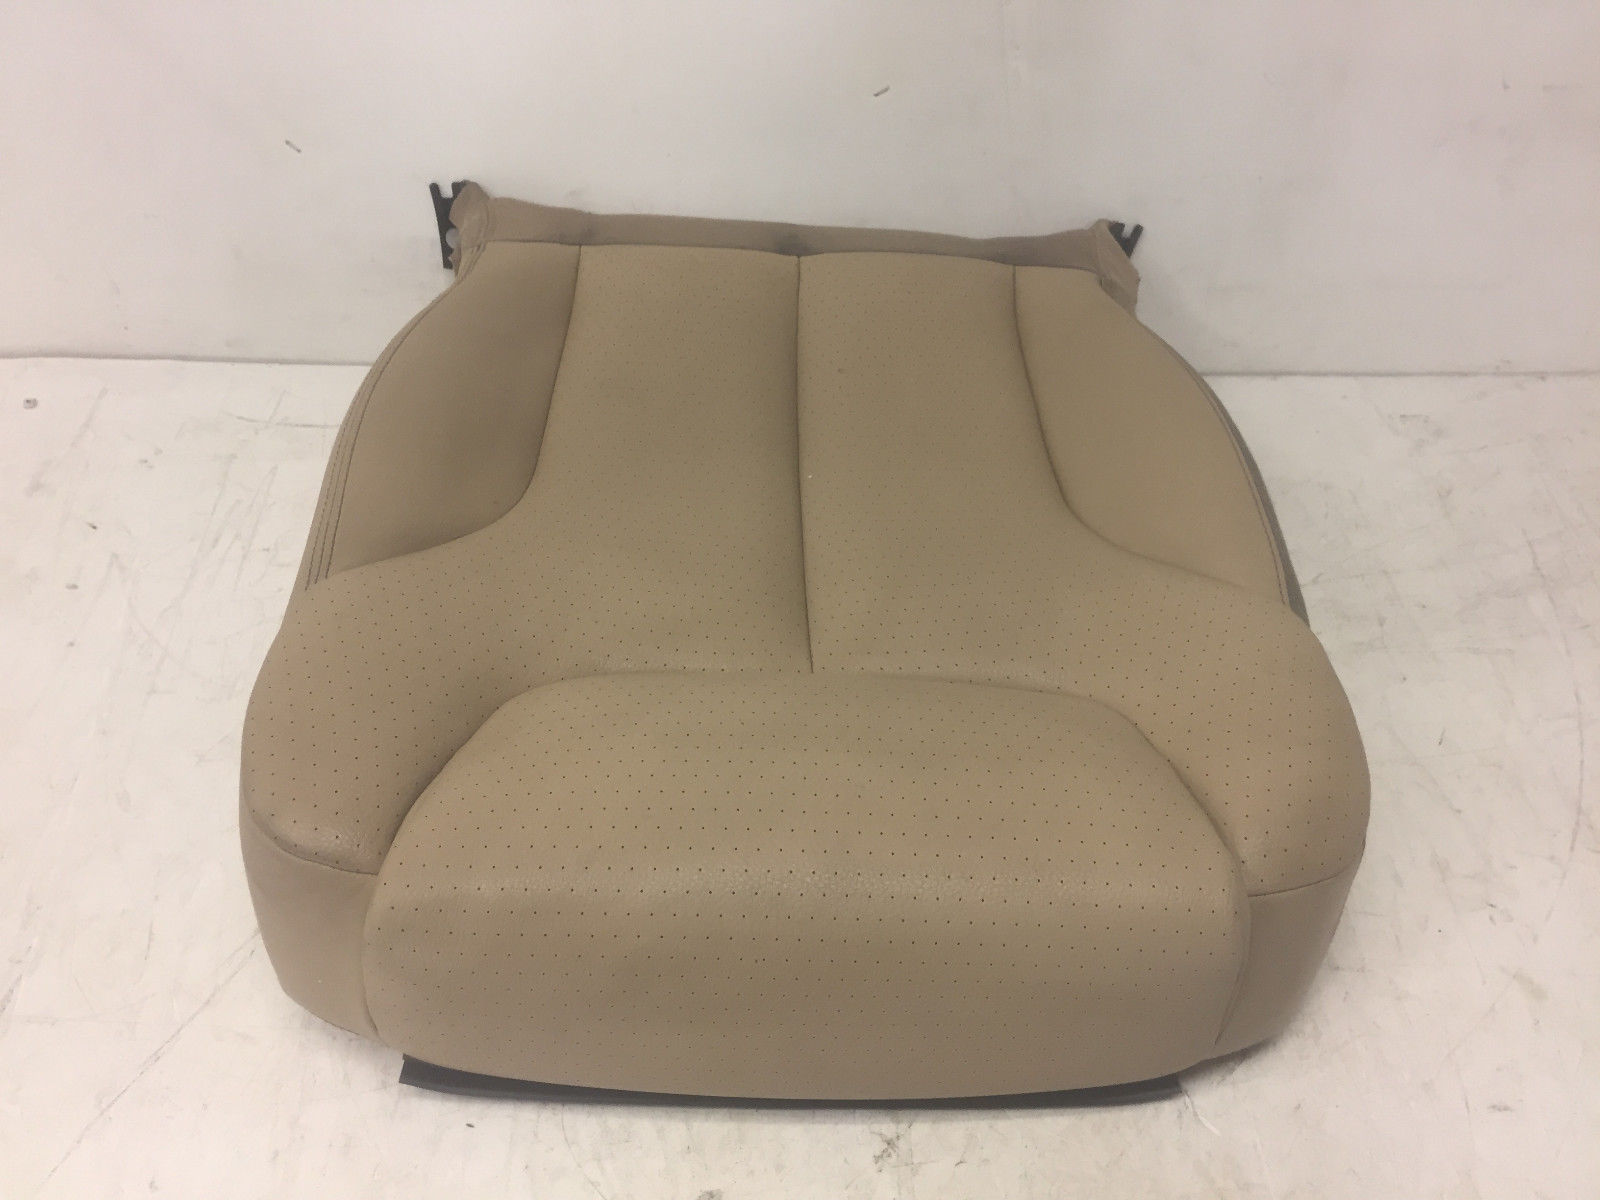 2006 Volkswagen Passat Front Right Passenger Said Lower Cover Seat